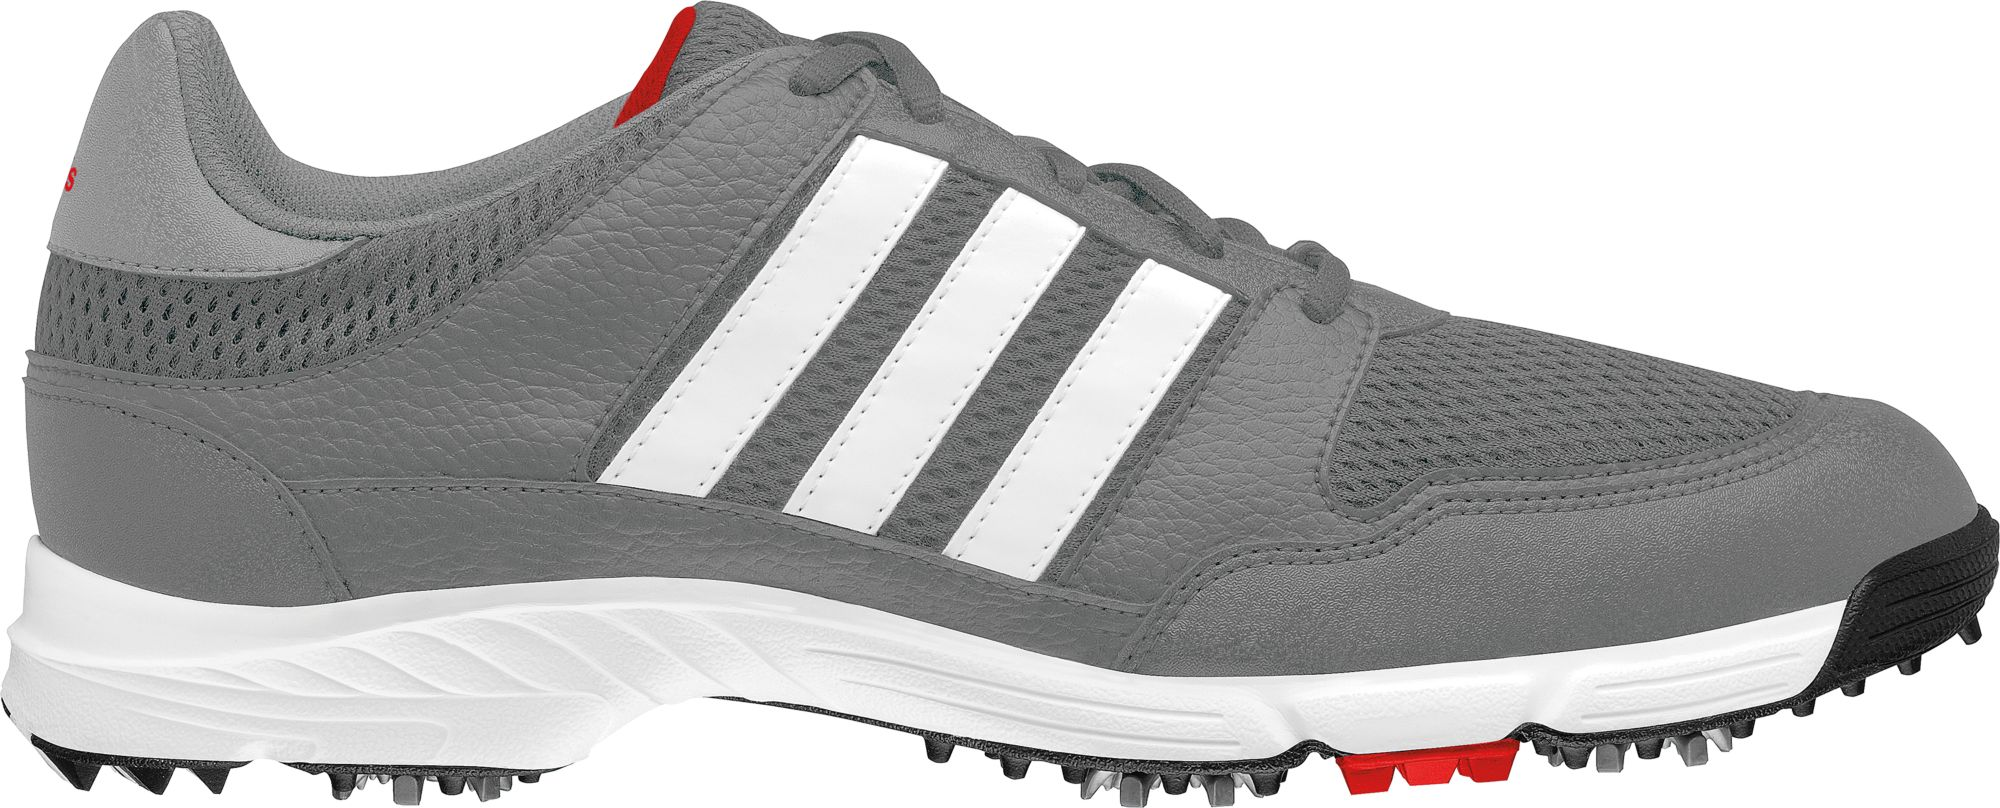 academy sports and outdoors golf shoes style guru